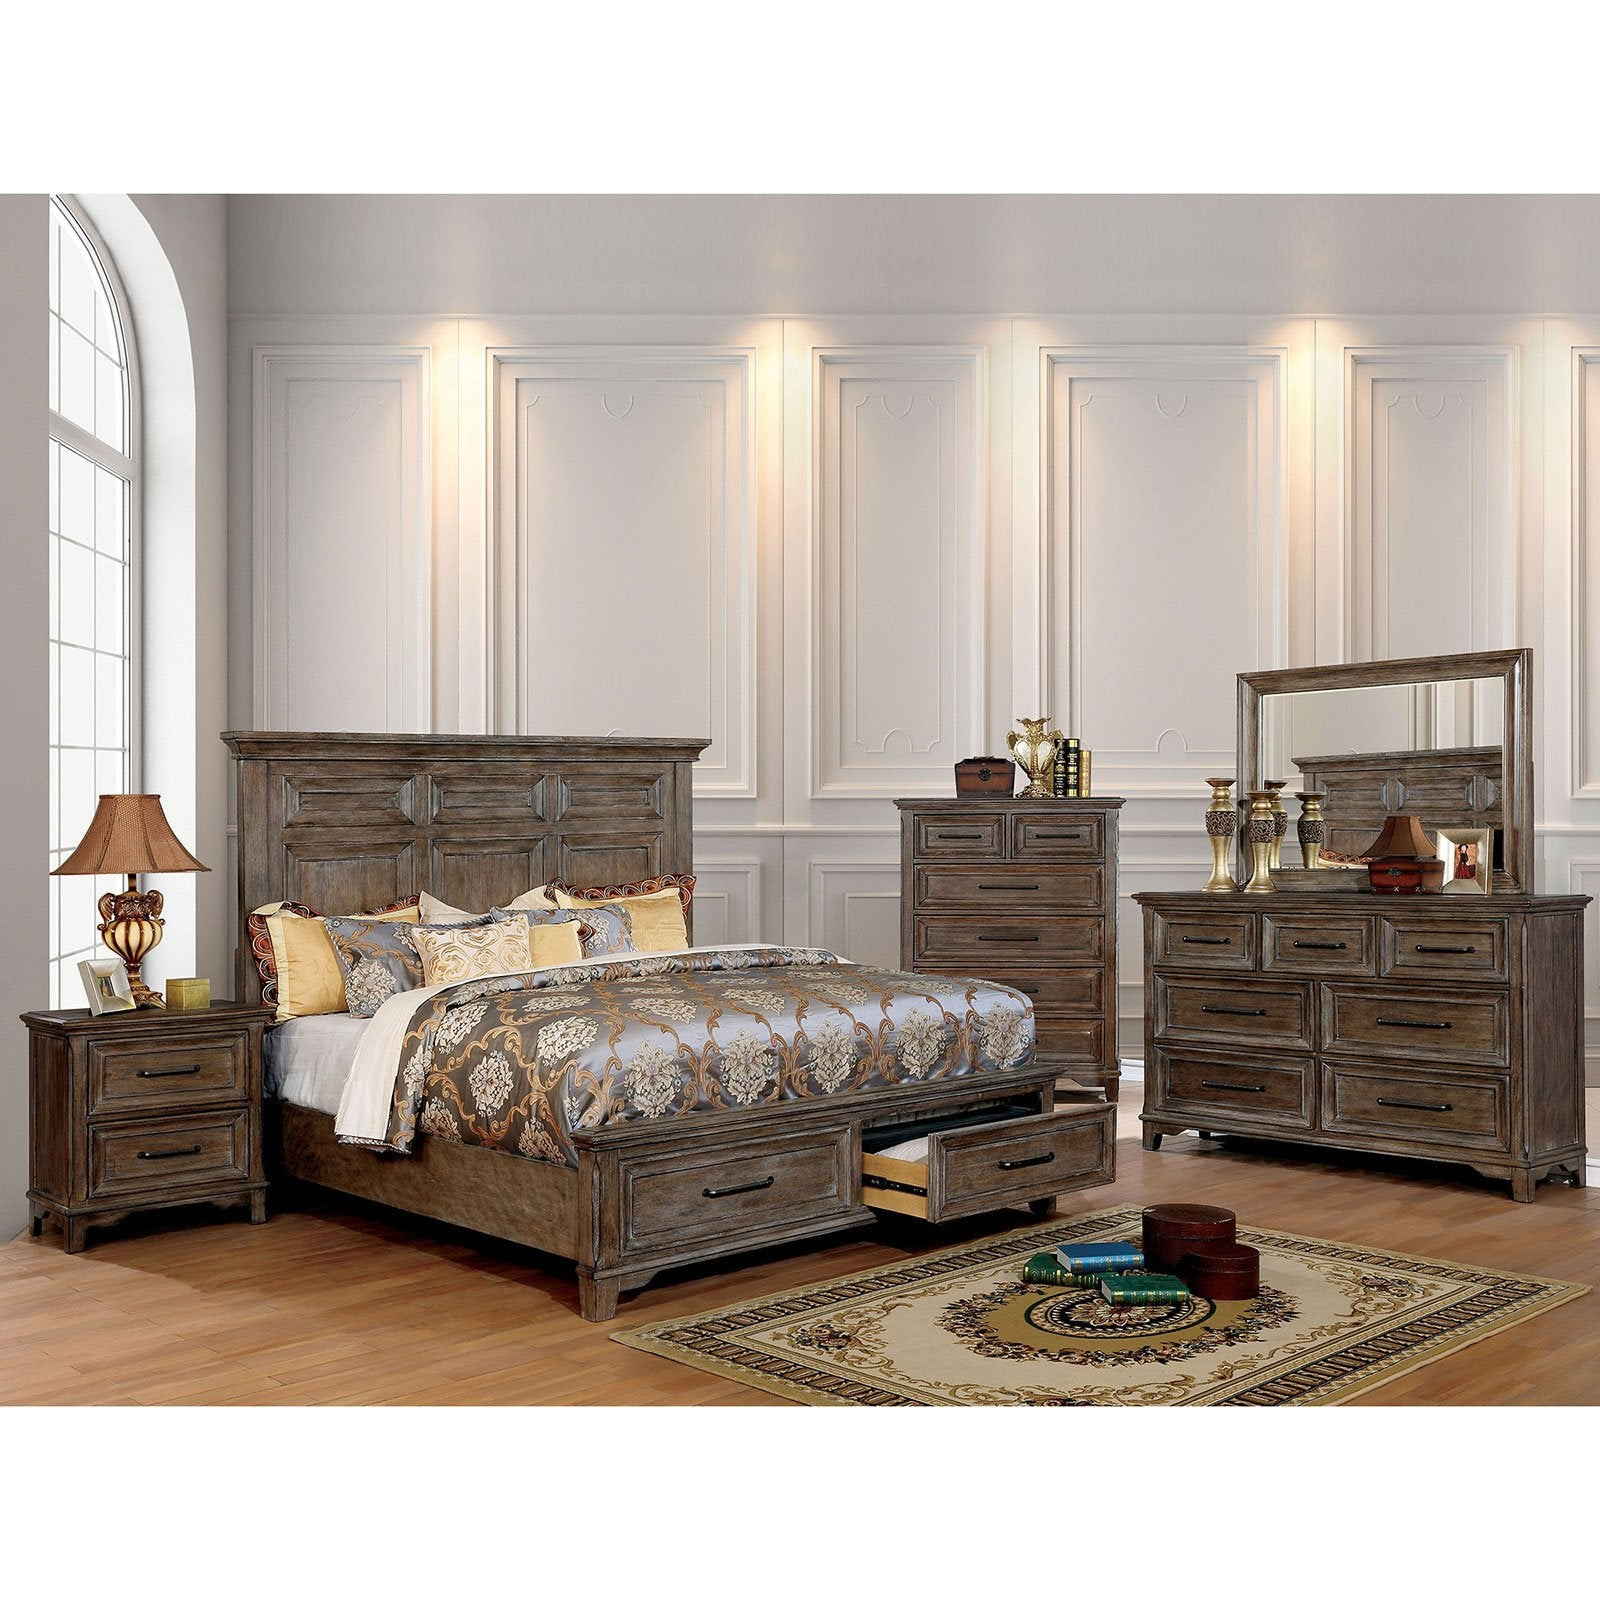 Oberon Transitional 4 Pc. Queen Bedroom Set - InteriorDesignsToGo.com